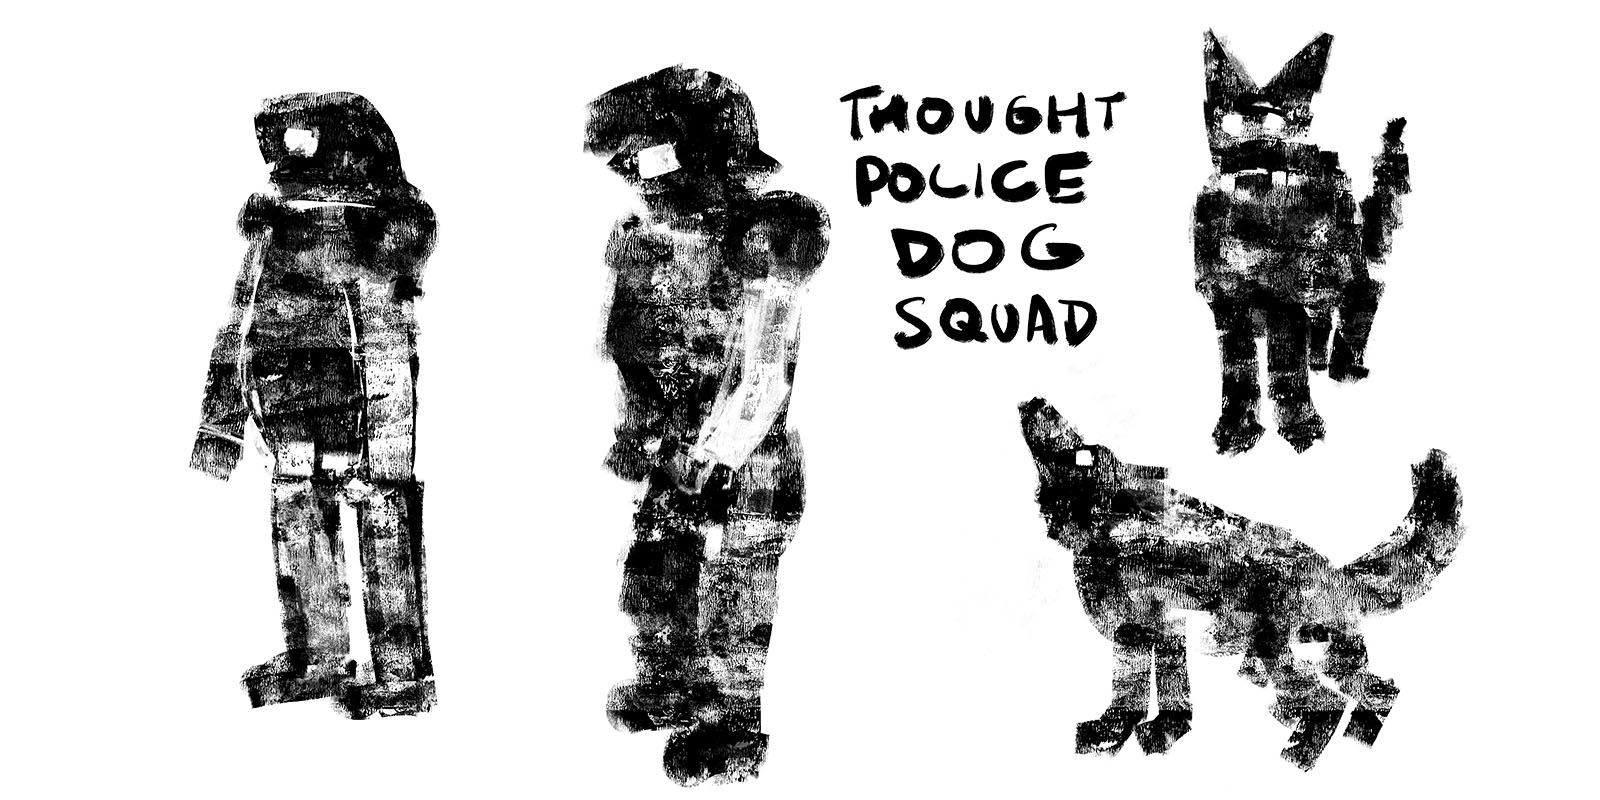 Thought Police Dog Squad